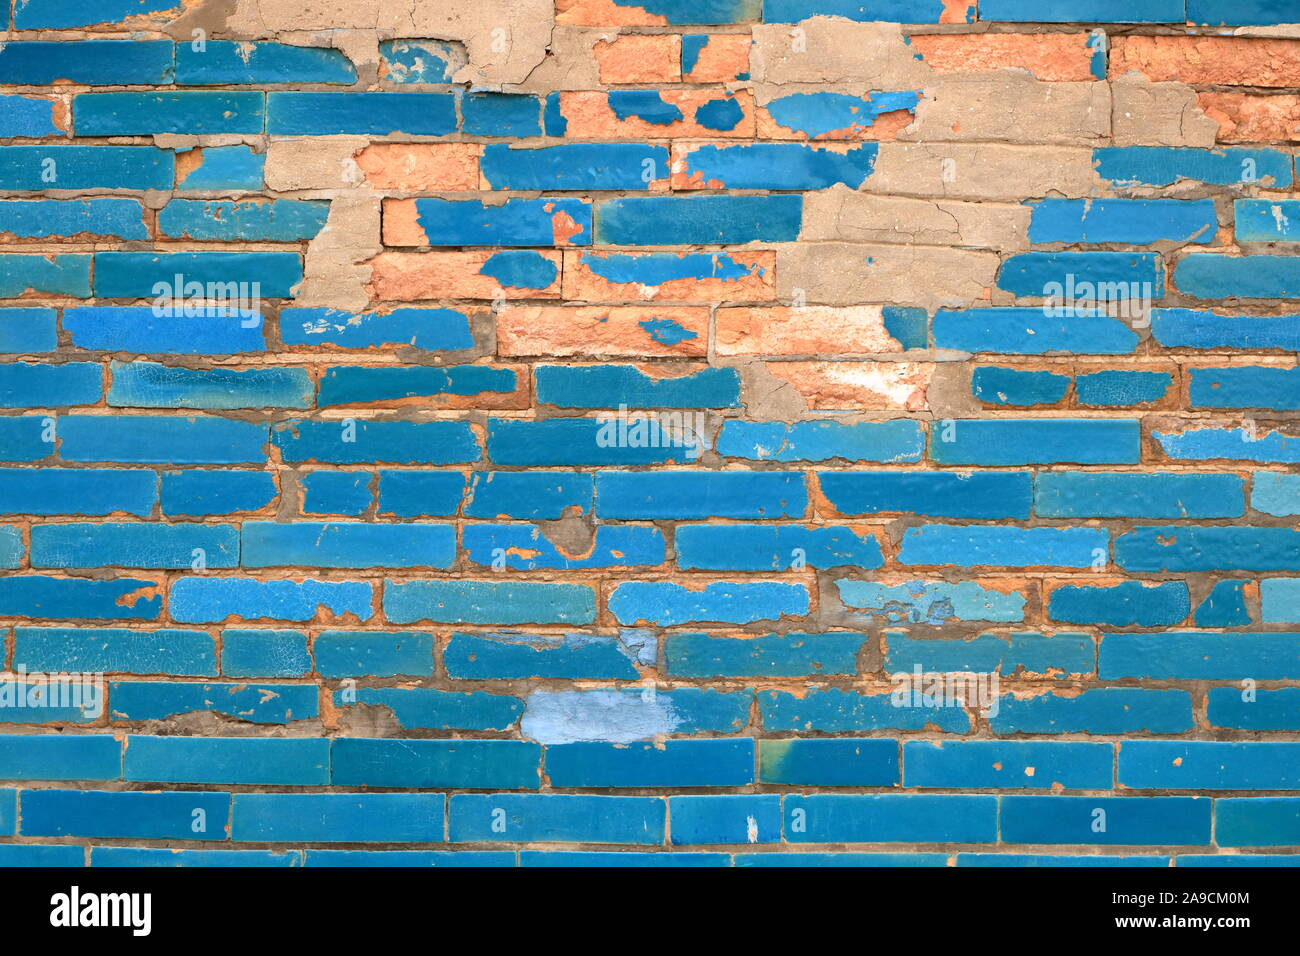 Turquoise Colored Brick Wall in Uzbekistan Background, Texture Pattern Stock Photo